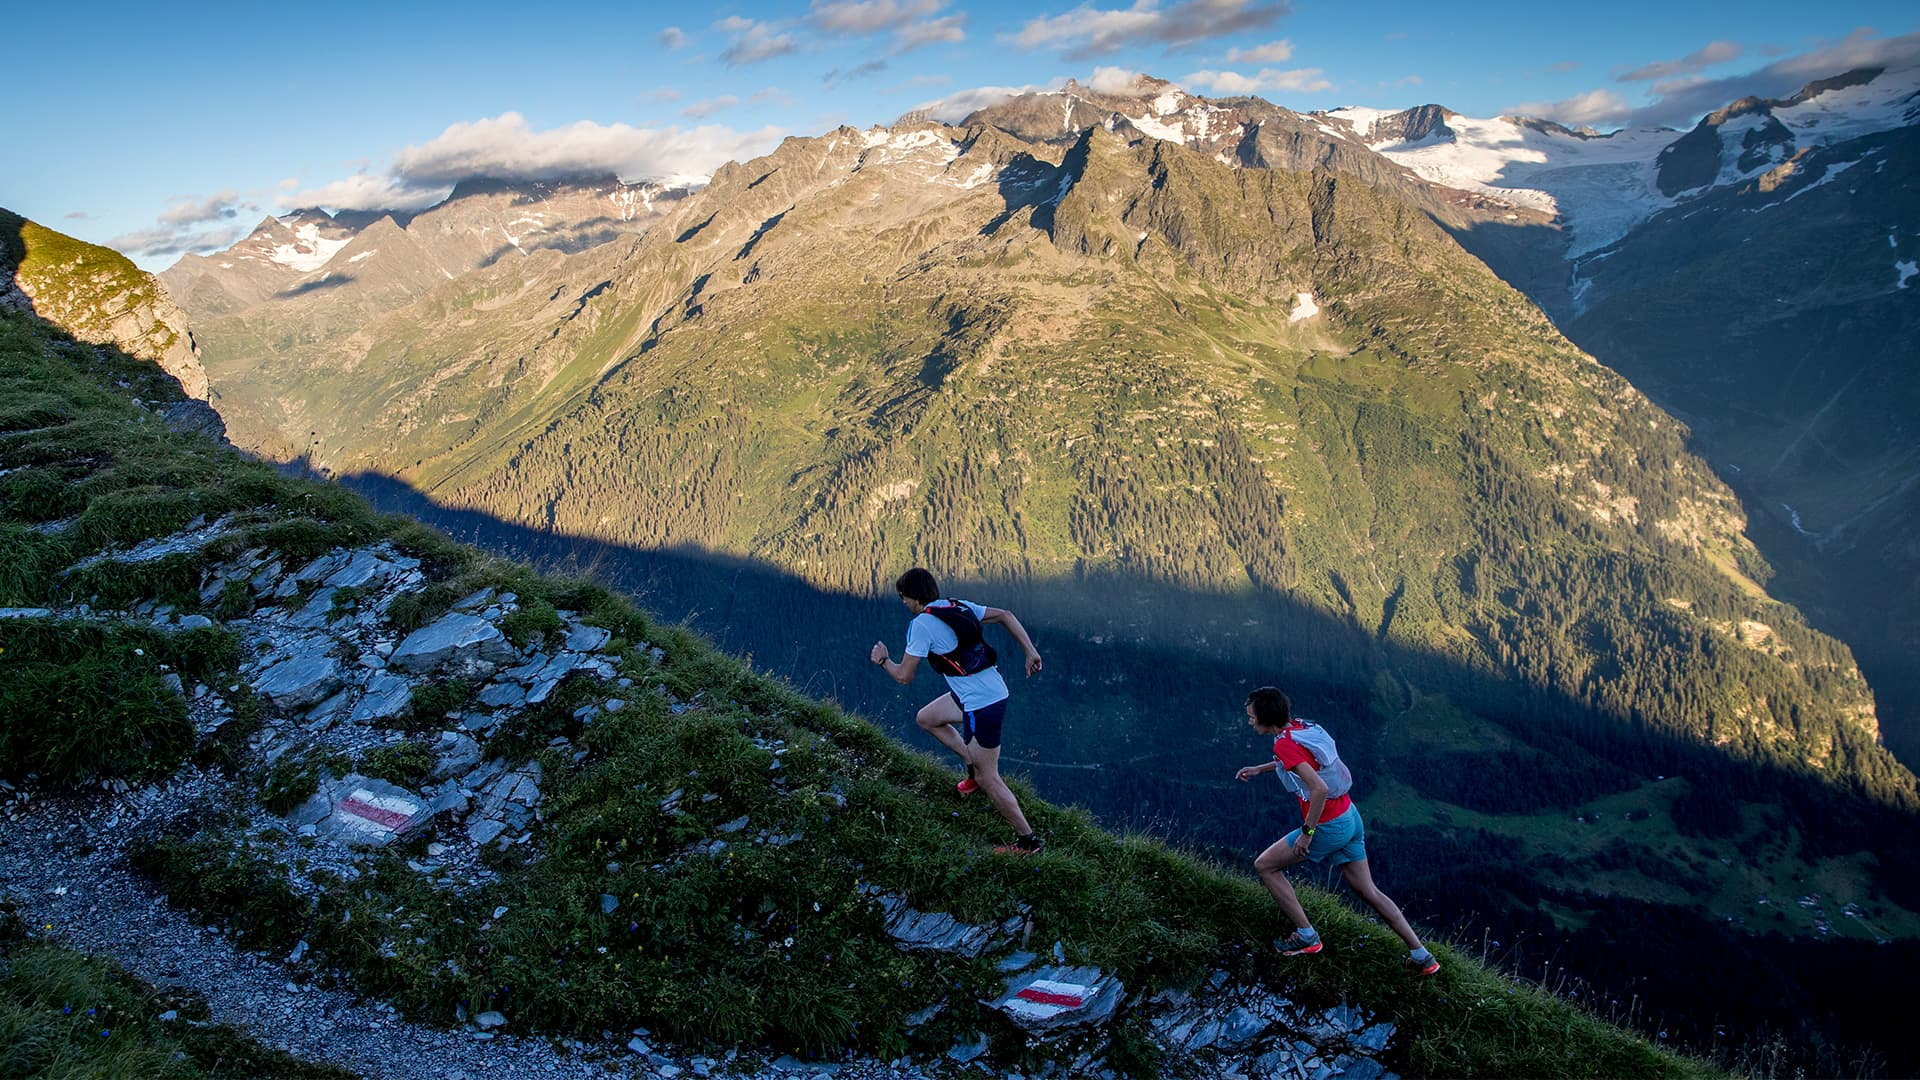 Trailrunning by David Birri